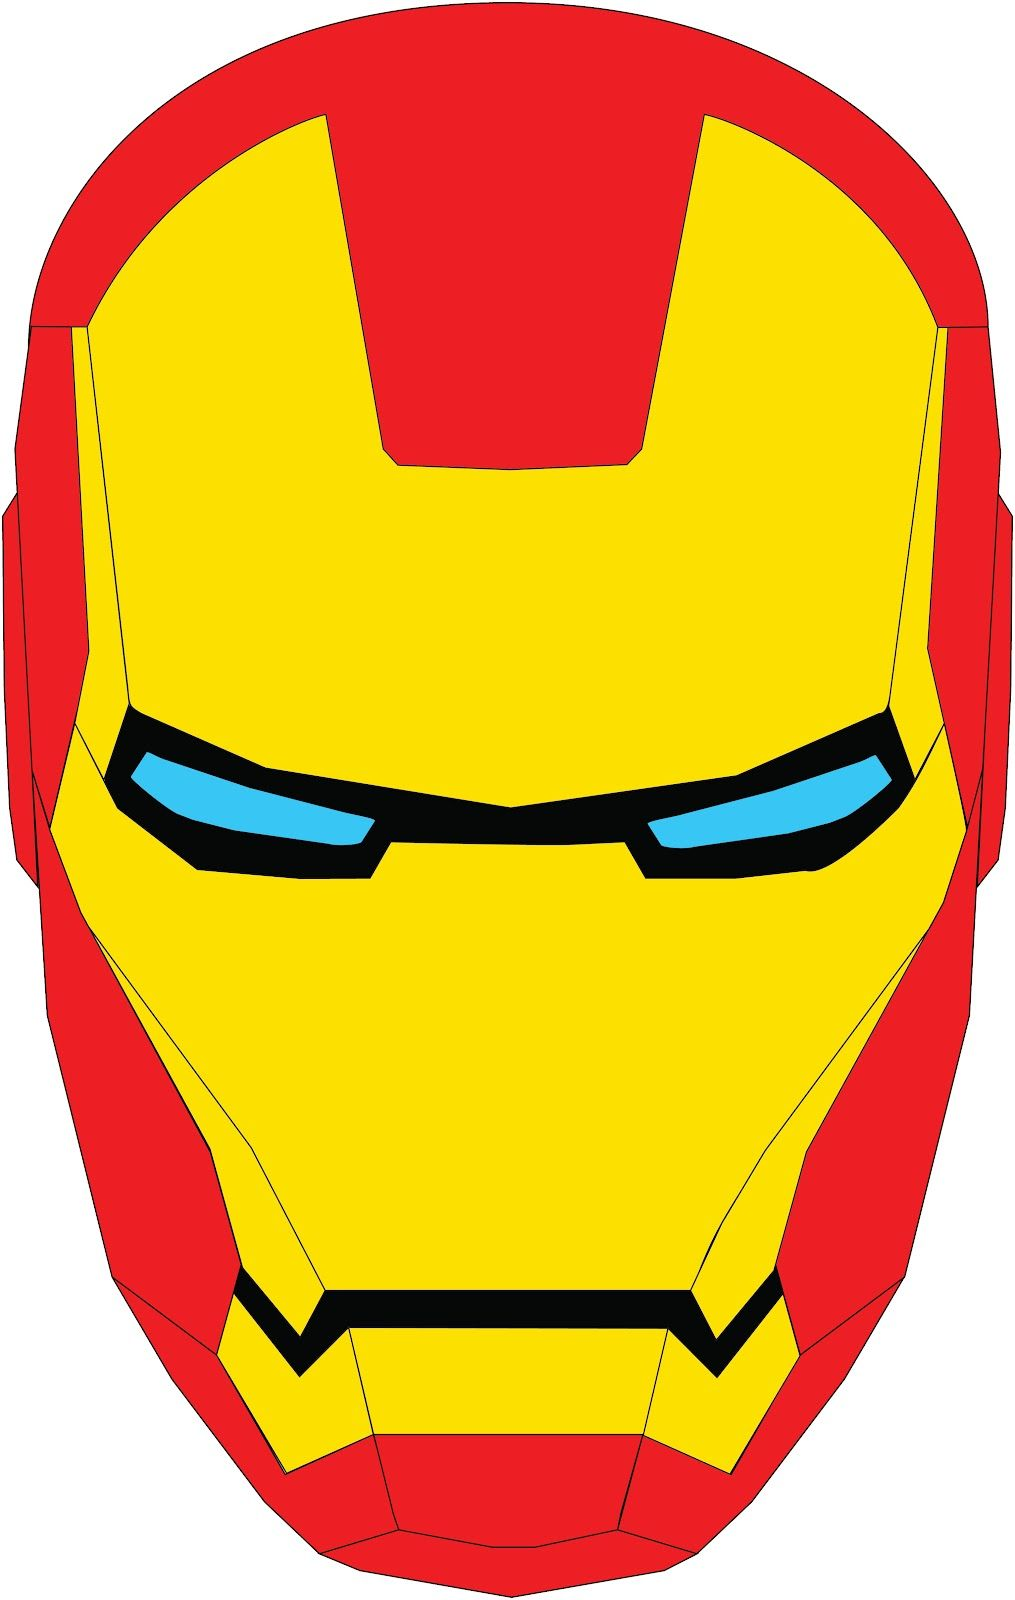 1015x1600 images for gt iron man face super hero board iron man face